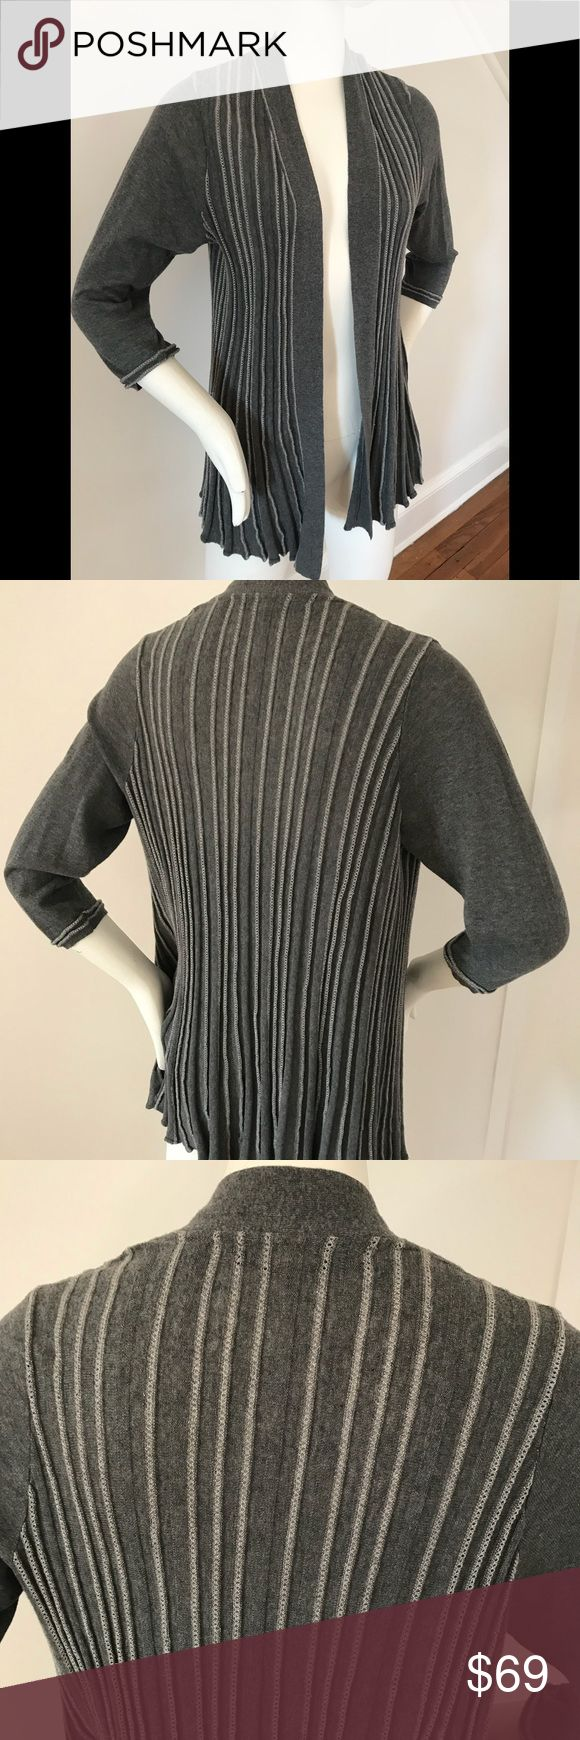 Anthropologie Knitted And Knotted Silver cardigan Anthropologie label knitted and knotted ribbed open front cardigan with silver pointelle stitch adds a touch of holiday sparkle to the mix. New without tags and never worn. Size large Anthropologie Sweaters Cardigans